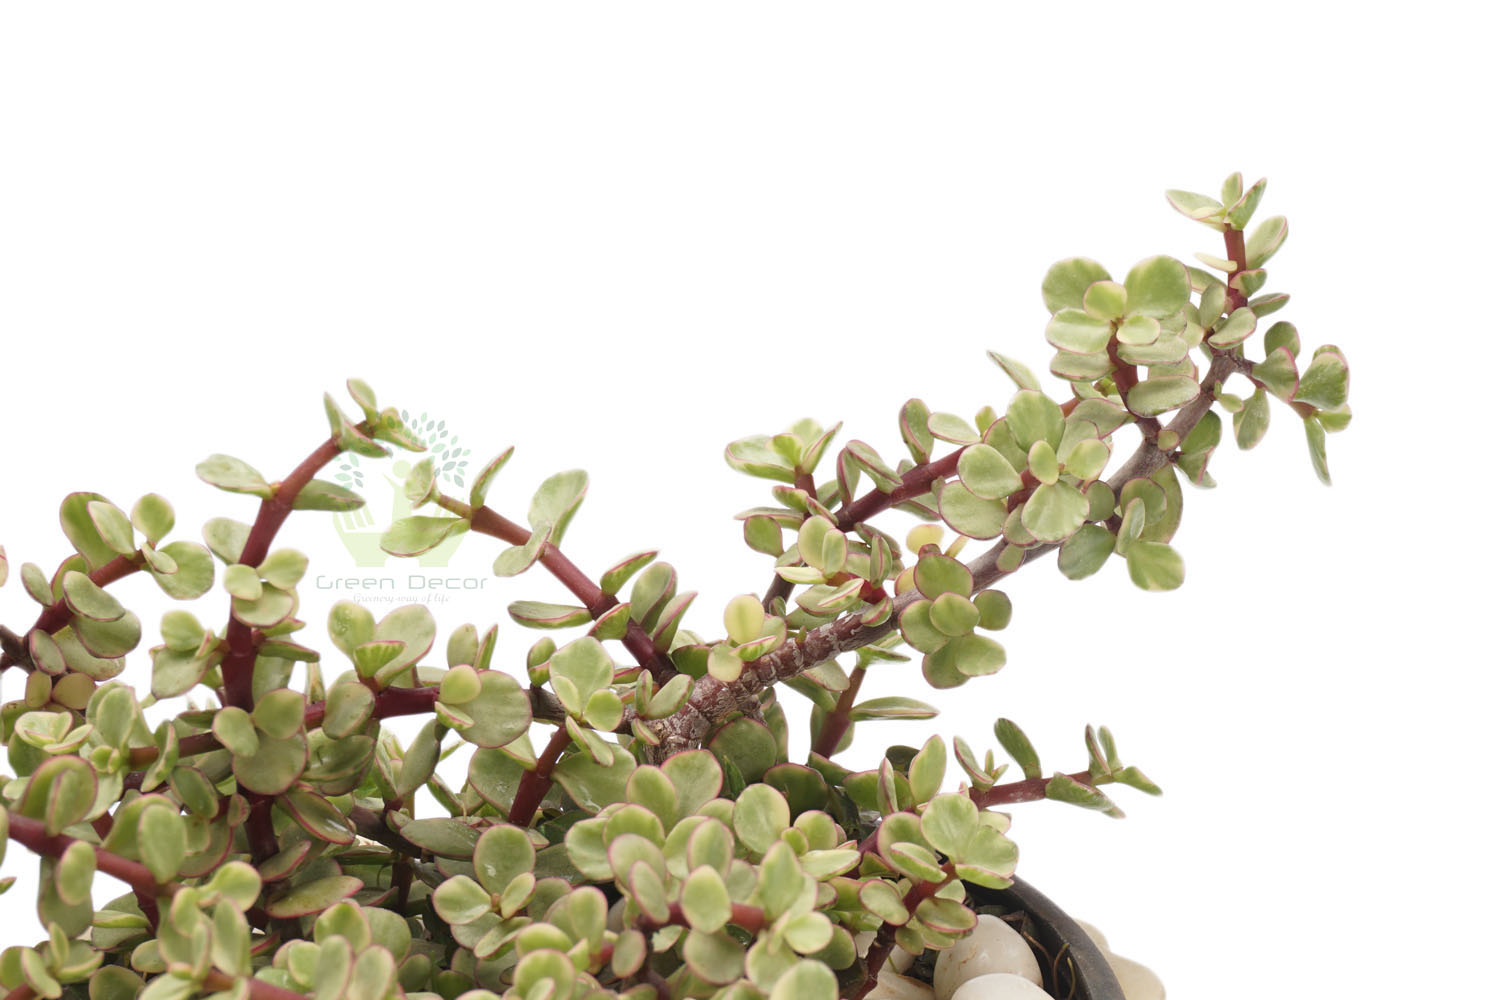 Buy Elephant Bush Jade Plants , White Pots and seeds in Delhi NCR by the best online nursery shop Greendecor.